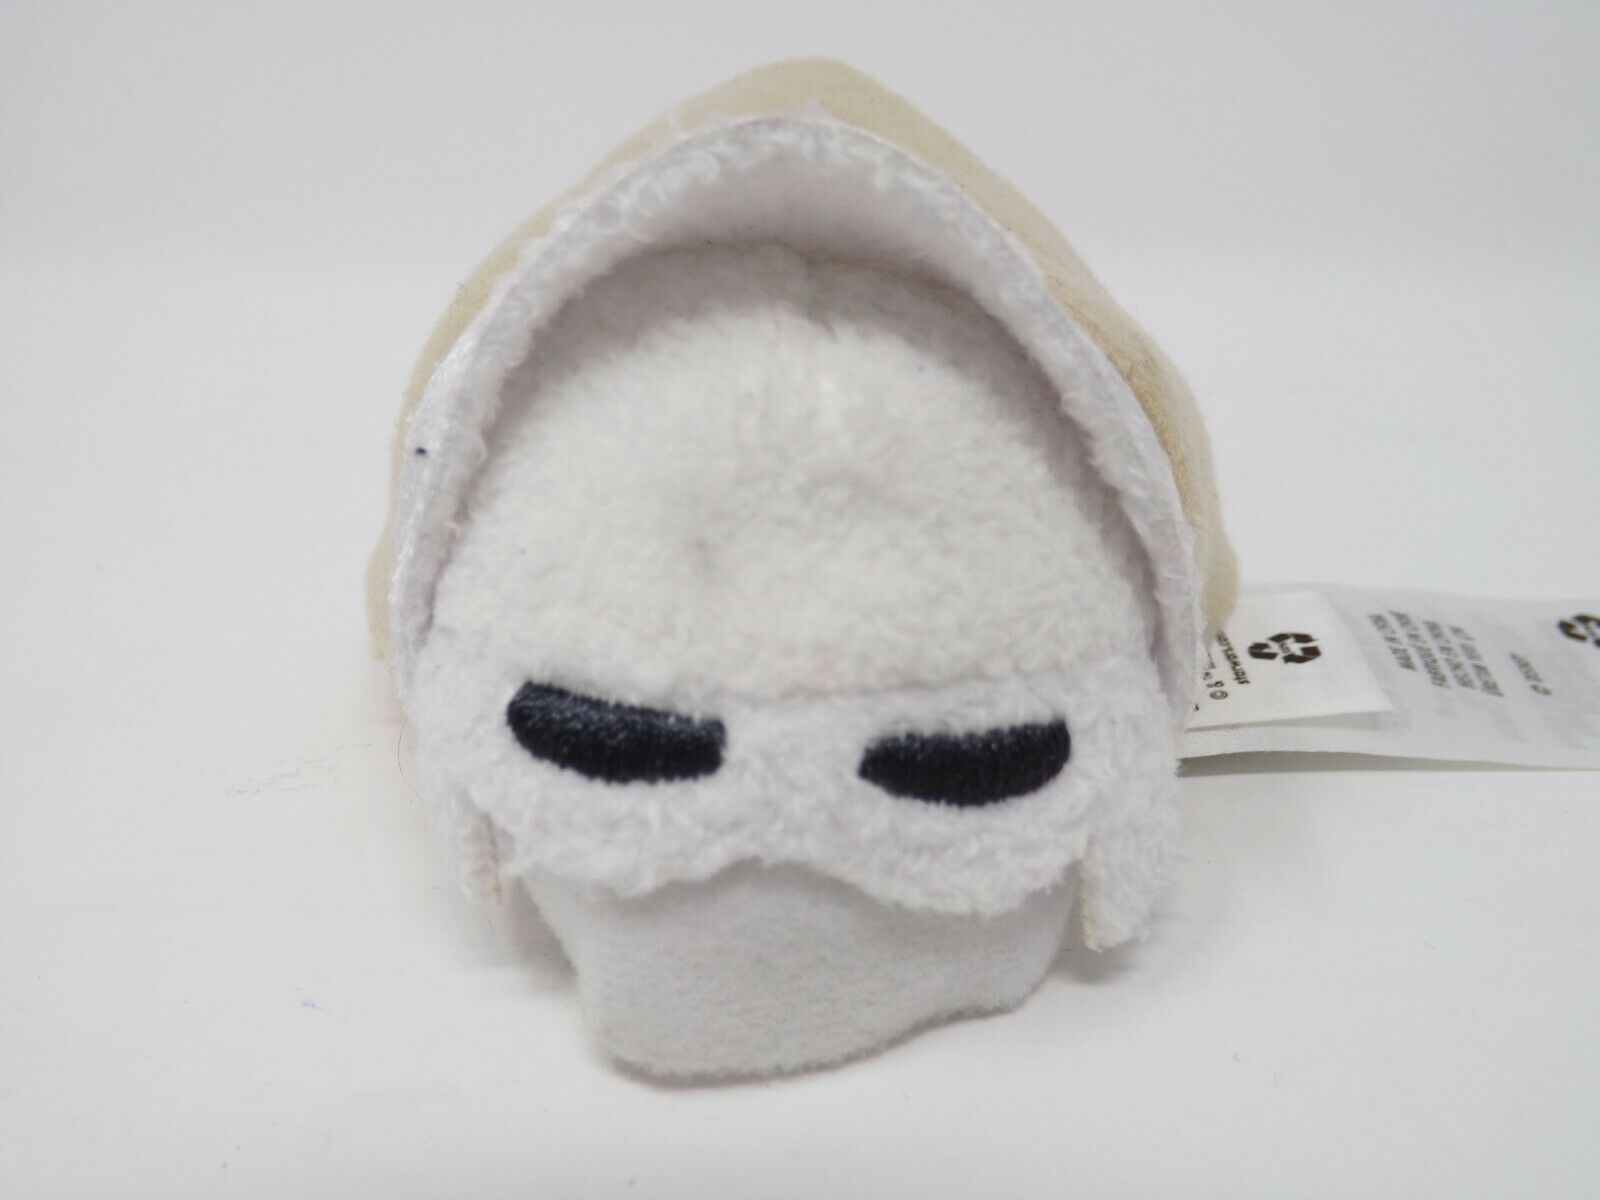 Disney Tsum Tsum Mini Soft Plush Stuffed Star Wars Hoth Snowtrooper